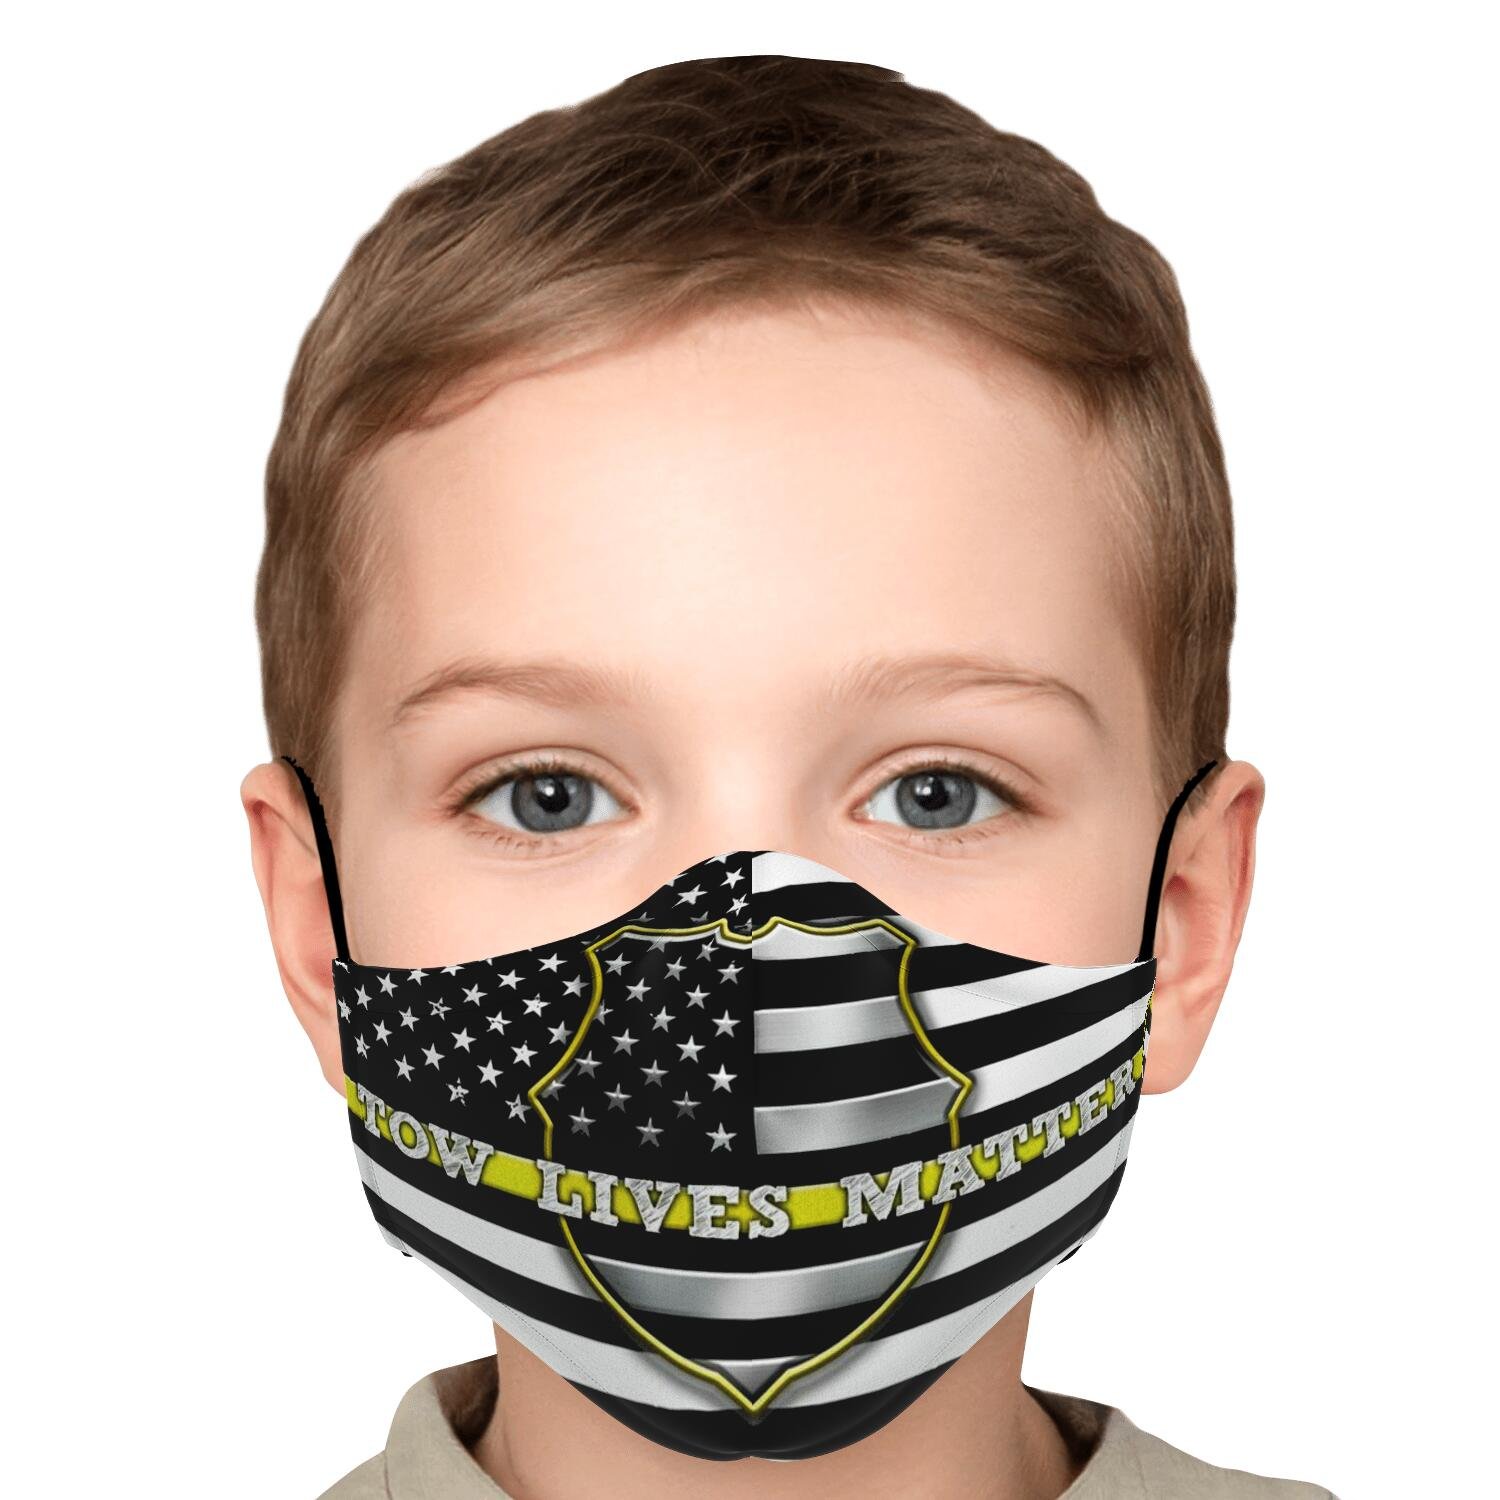 Tow Lives Matter Kid's Face Mask